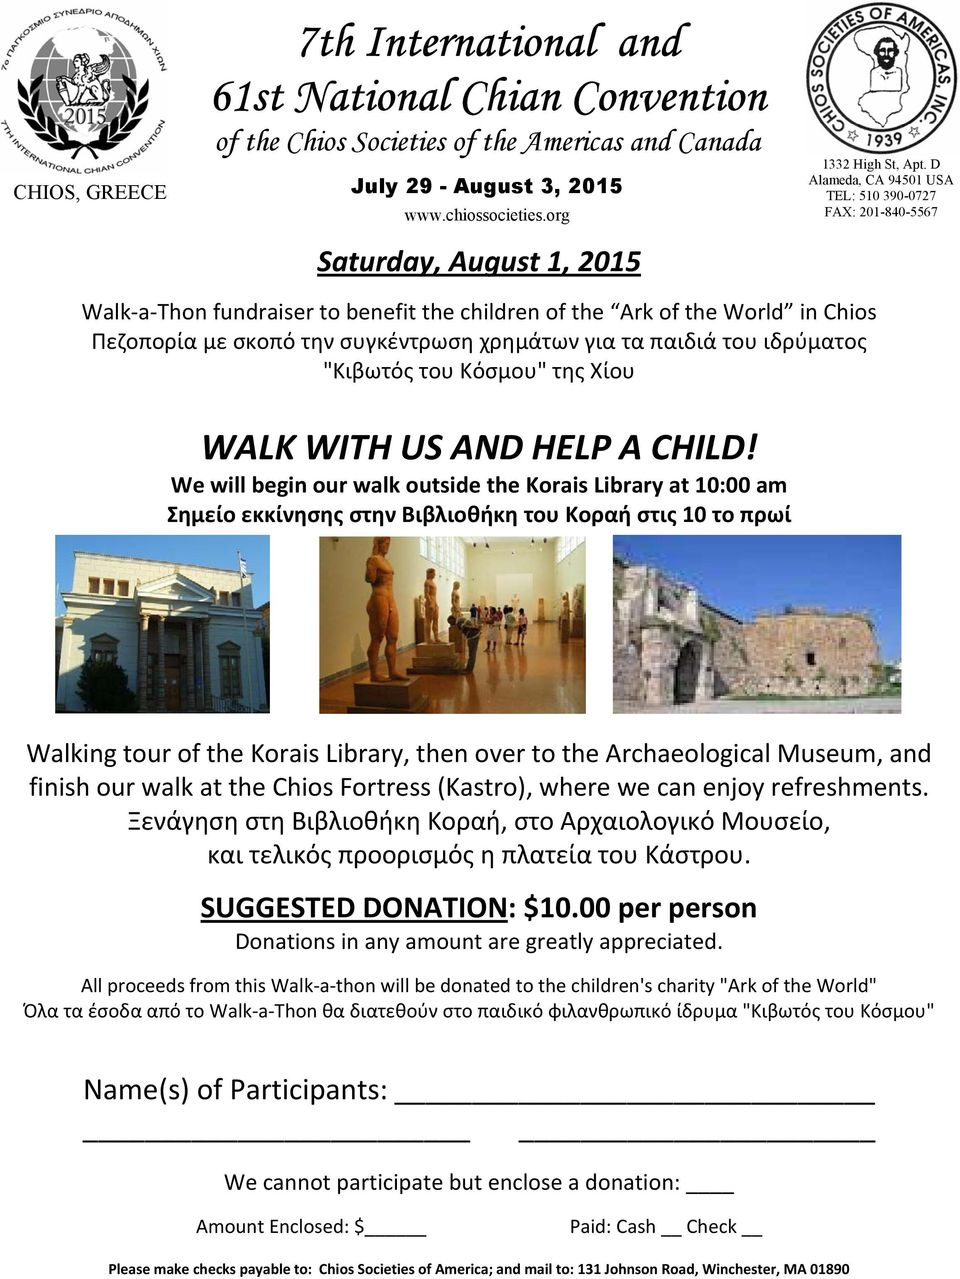 We will begin our walk outside the Korais Library at 10:00 am Σημείο εκκίνησης στην Βιβλιοθήκη του Κοραή στις 10 το πρωί Walking tour of the Korais Library, then over to the Archaeological Museum,